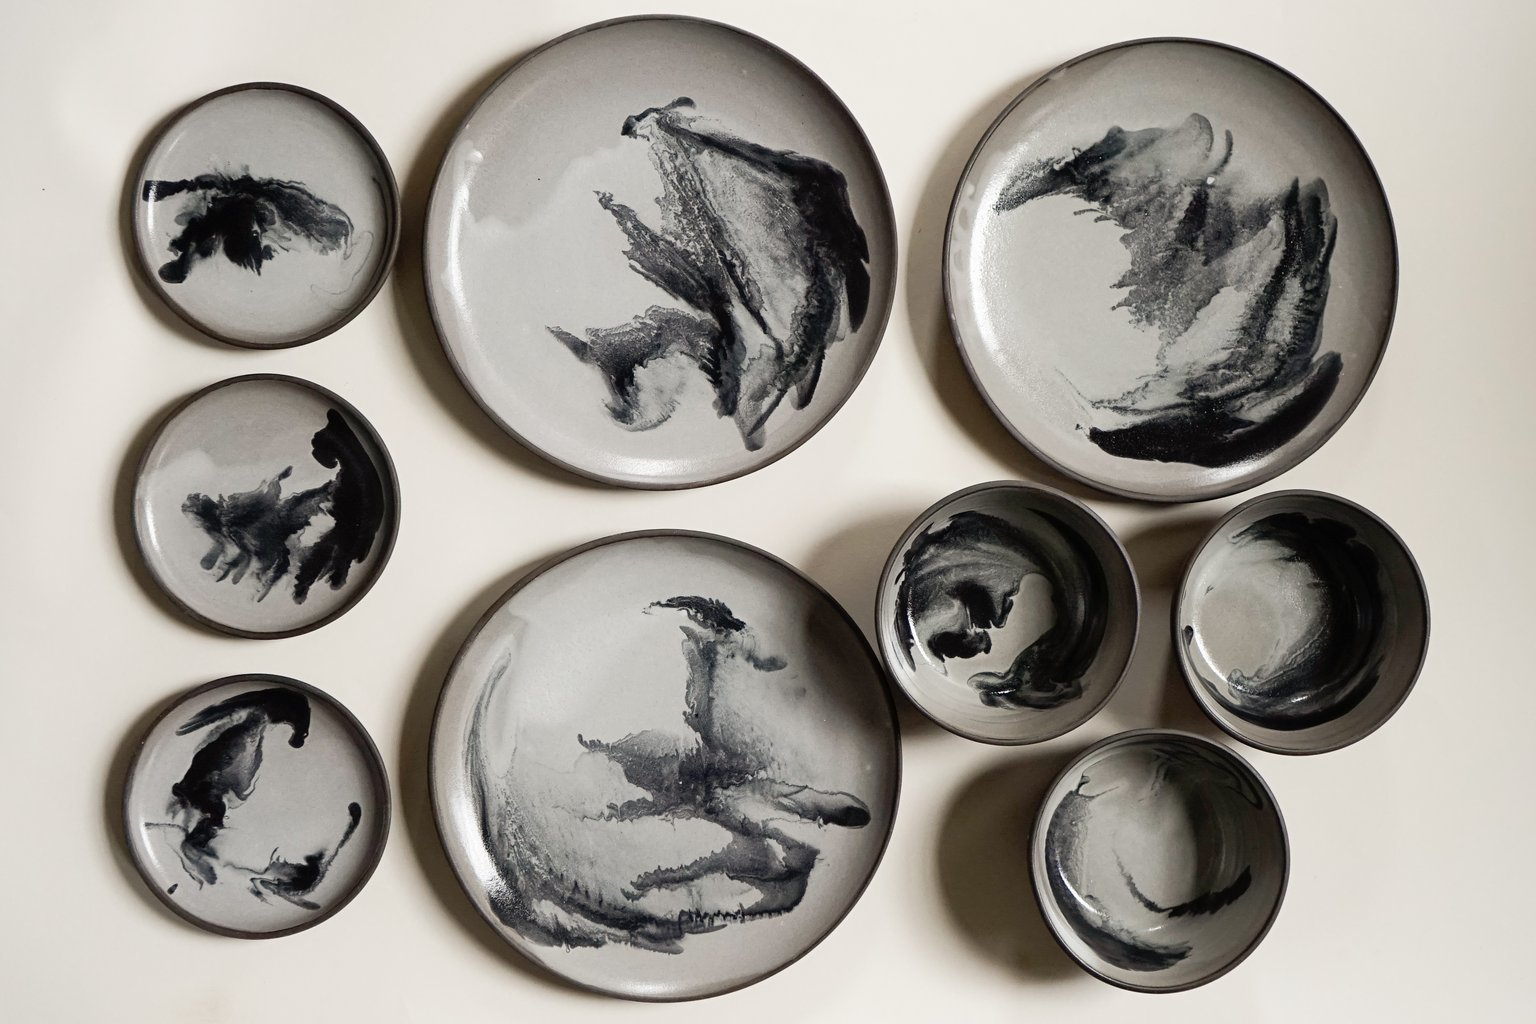 Photo 4 of 6 in 5 Indie Ceramic Brands We're Currently Crushing On